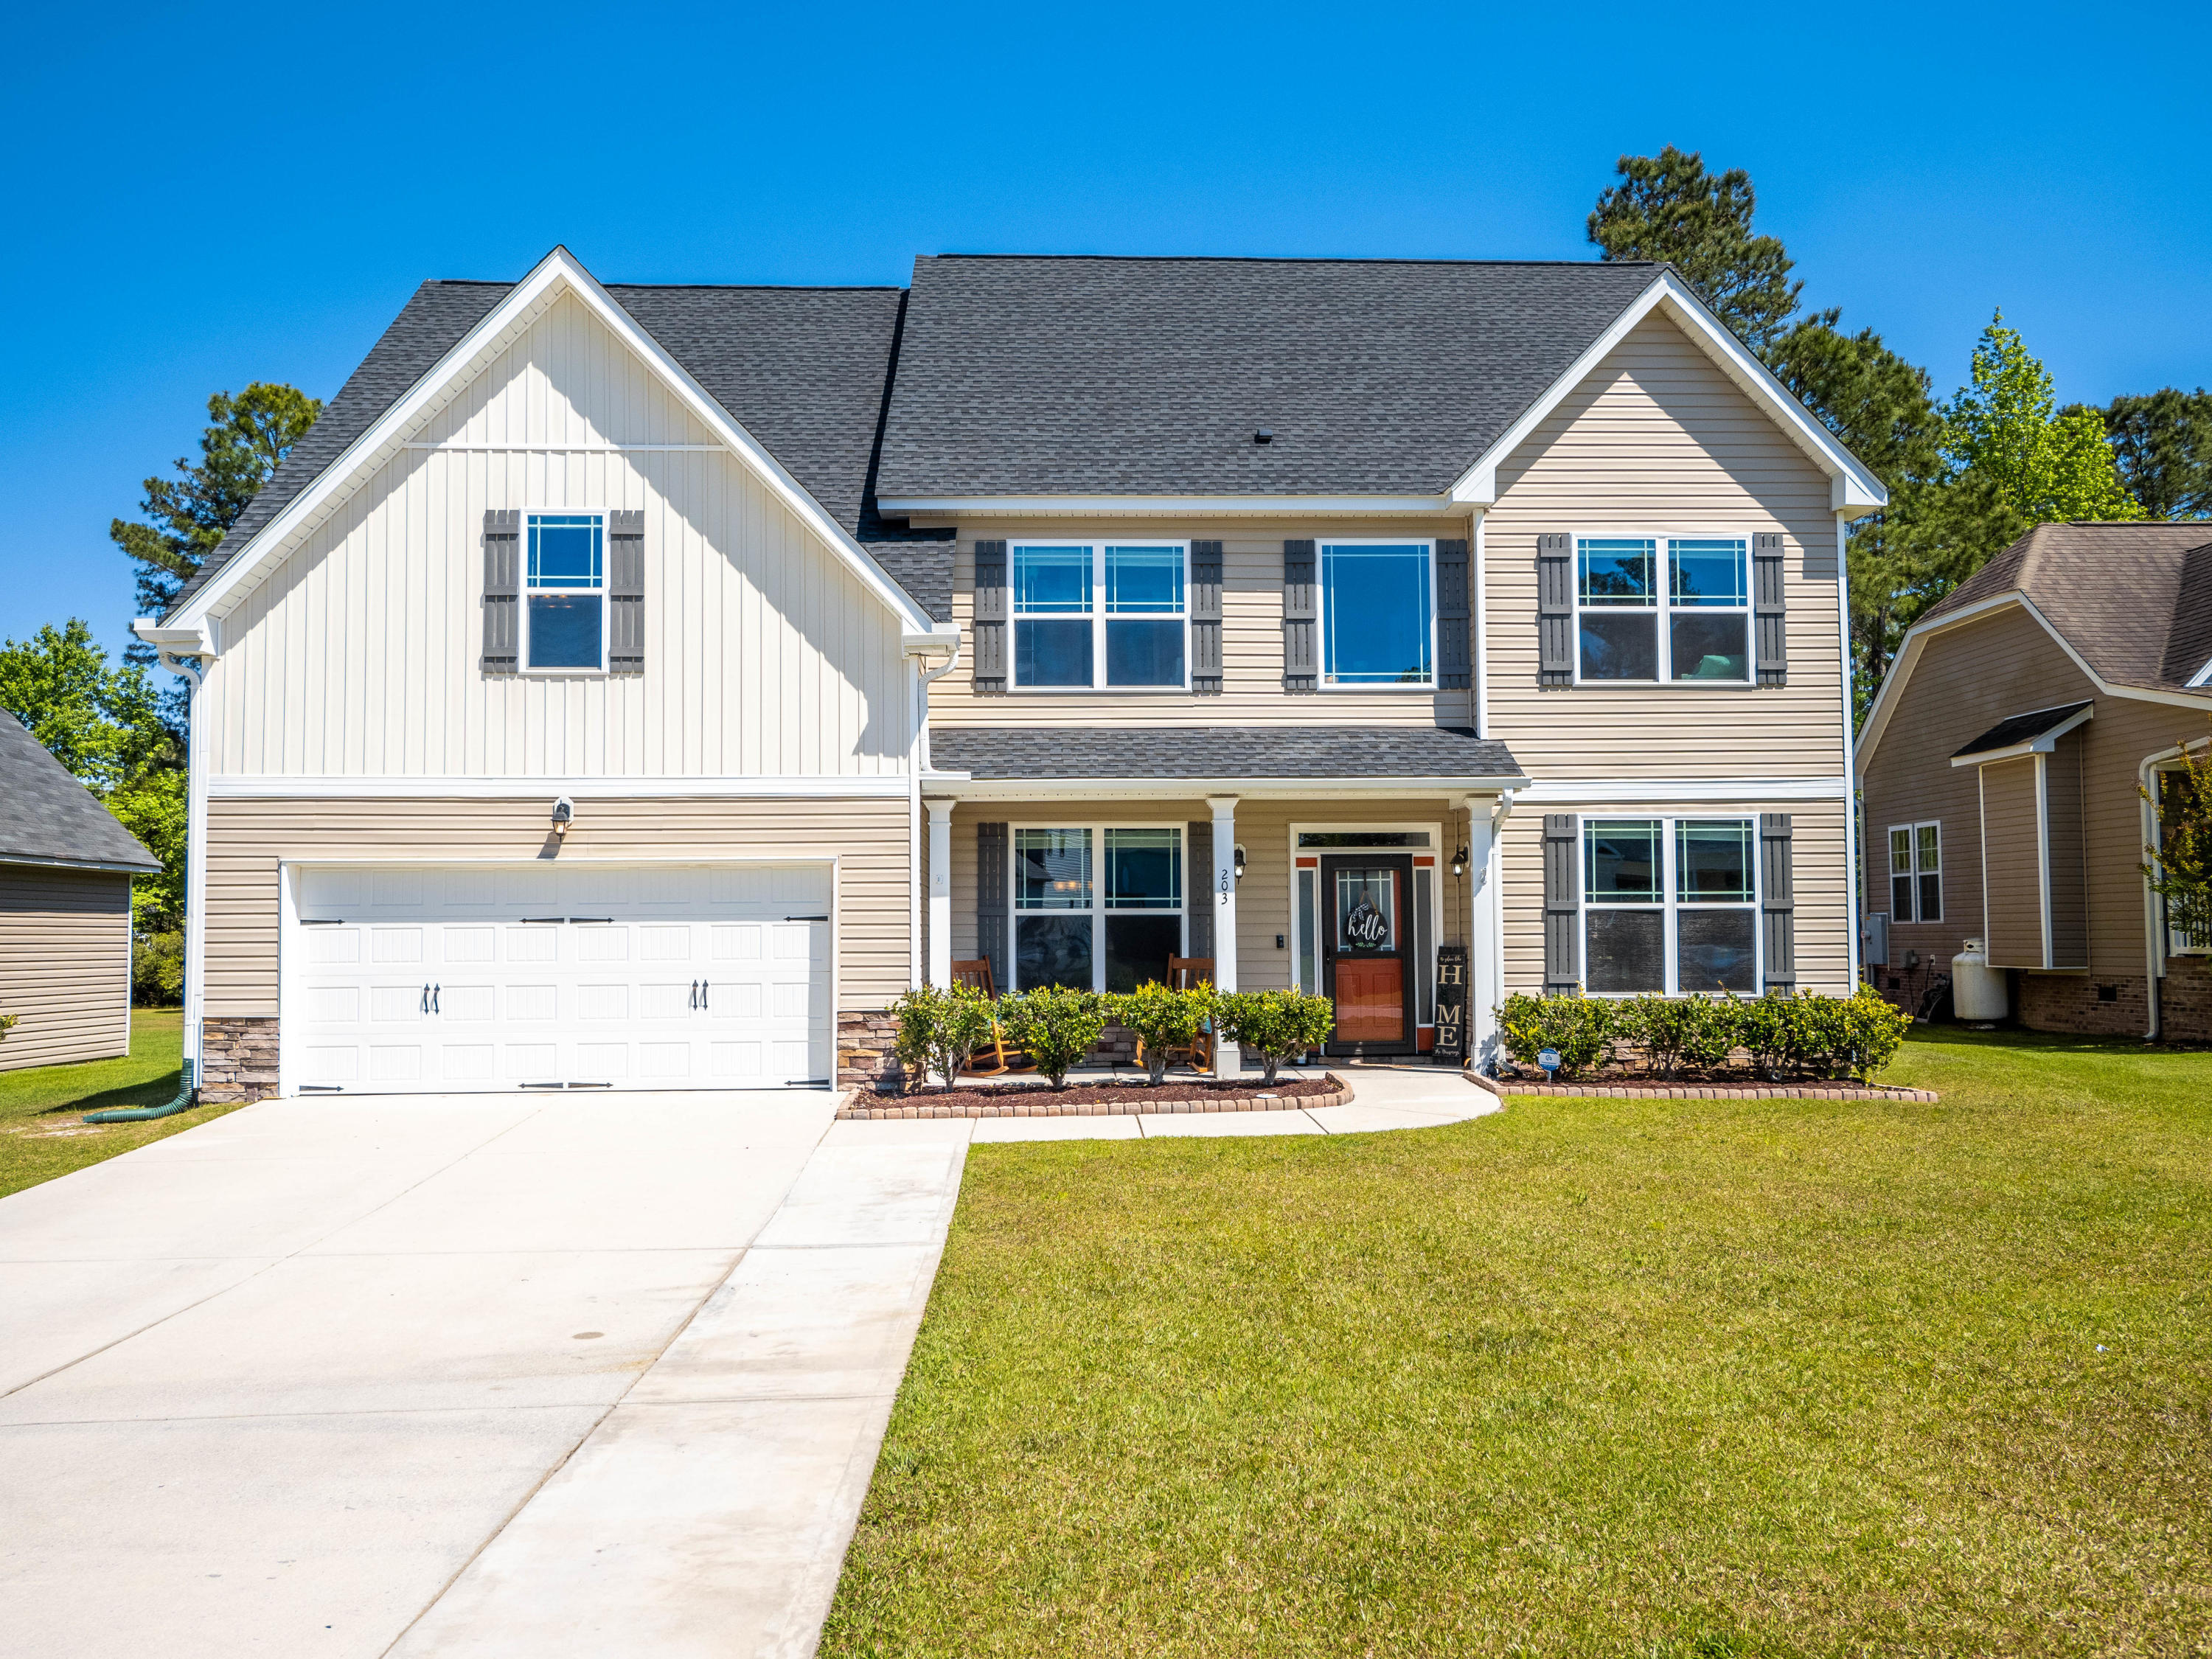 This beautiful homes' architectural exterior will catch your eye when you enter Southwest Plantation subdivision next to Bear Trail Golf Club. This home is conveniently located near the community entrance and 1 house away from the school bus stop pickup/drop-off location. This Hamilton floorplan and home was built in 2012 and has 3125 sq.ft. boasting 4-bedrooms (+ bonus room = current use as a home theater), 3 full bathrooms. Your 1st floor entry has cathedral ceilings, a formal dining room to the left with coffered ceilings and craftsman style columns and to the right a den. The chef's kitchen has granite countertops, pantry, a new dishwasher, new microwave, kitchen refrigerator stays, and island with seating for 2. There's also an eat-in dining room that faces the family room with a cozy wood burning fireplace and stairs. This home has 1 downstairs guest bedroom that directly connects to the 1st floor full bathroom and the upstairs guest bedrooms share a jack-and-jill bathroom. On the opposite side of the upstairs level is the master bedroom which includes a sitting area, walk-in closet, separate walk-in shower and soaking tub. The homes upstairs laundry room will come with the washer & dryer + the kitchen will include the refrigerator with icemaker and water dispenser, along with the newly installed additional appliances: electric cooktop, microwave, and dishwasher. The home also has a newly installed 2018-2019 architectural shingle roof, storm door on the front and rear doors, and the garage comes with overhead storage racks. The large upstairs bonus room is currently being used as a home theater room and the equipment will not be sold with the home unless negotiated. The 6' privacy fenced in backyard will come with the playground. The front driveway concrete was expanded, and a sump pump was installed in the front yard to help remove what once was excess water on/near the driveway. The flooring is LVP downstairs in the main living areas and all bedrooms and sta